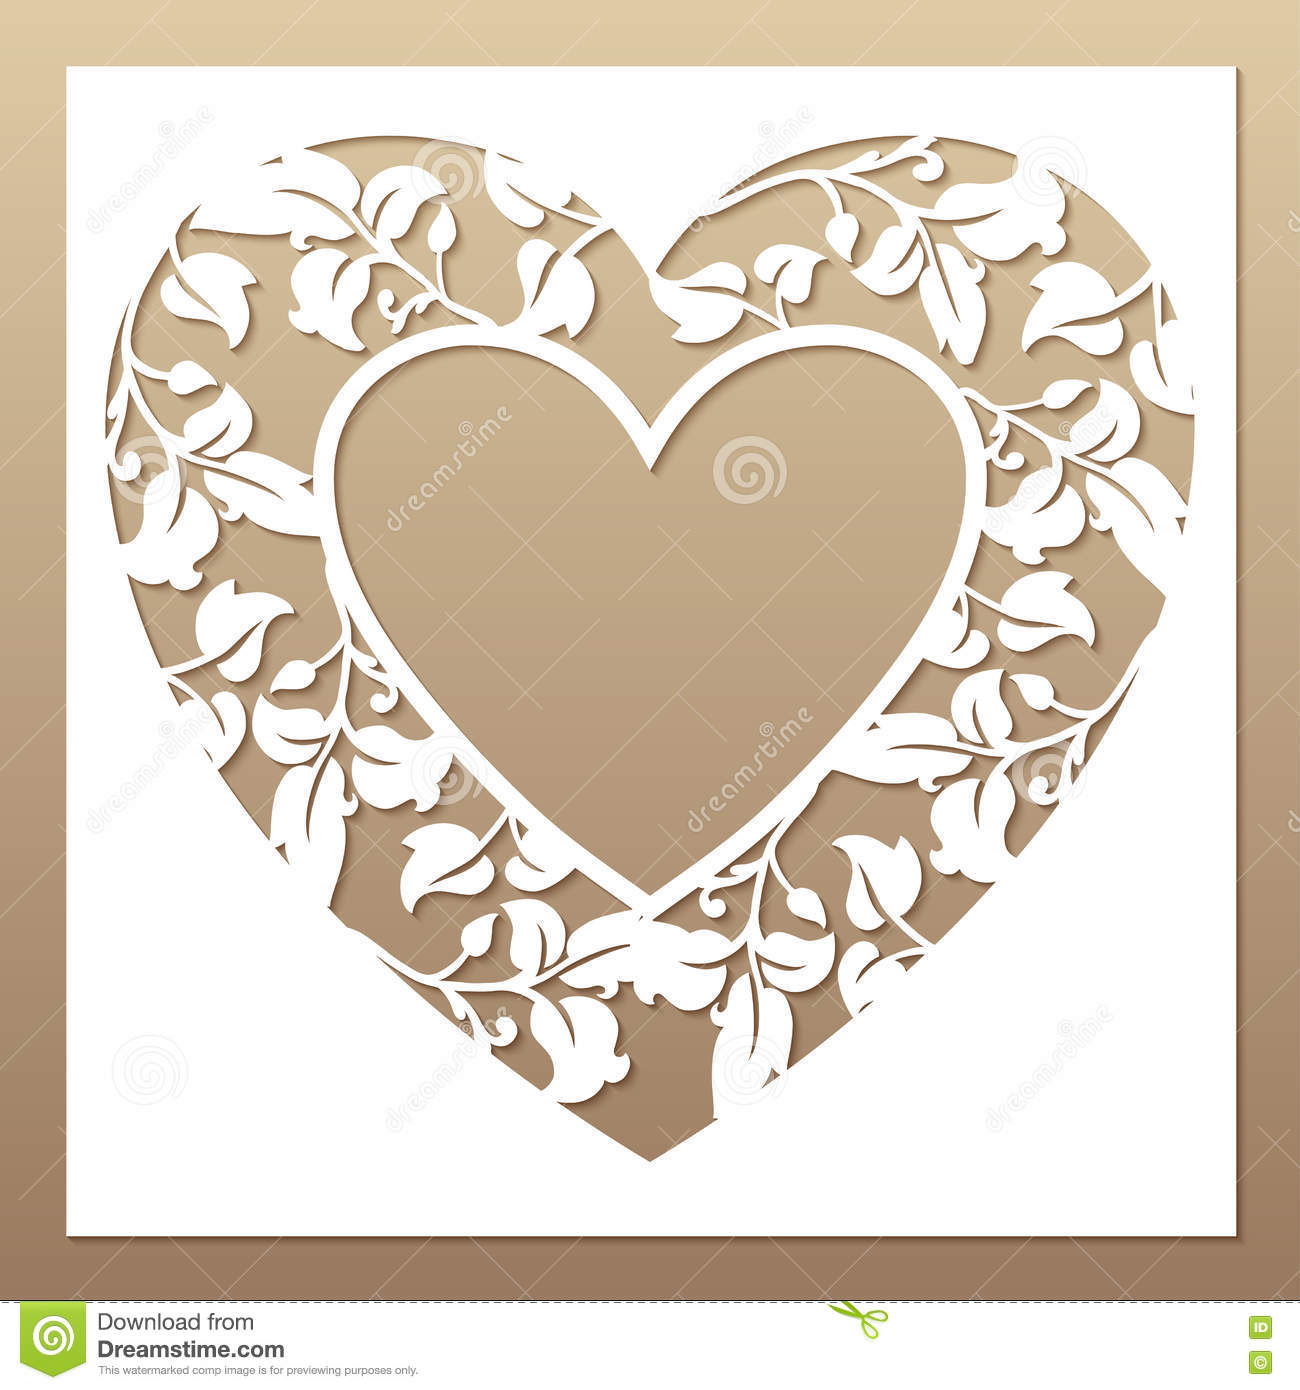 free laser cutter templates - openwork white frame with heart and leaves stock vector